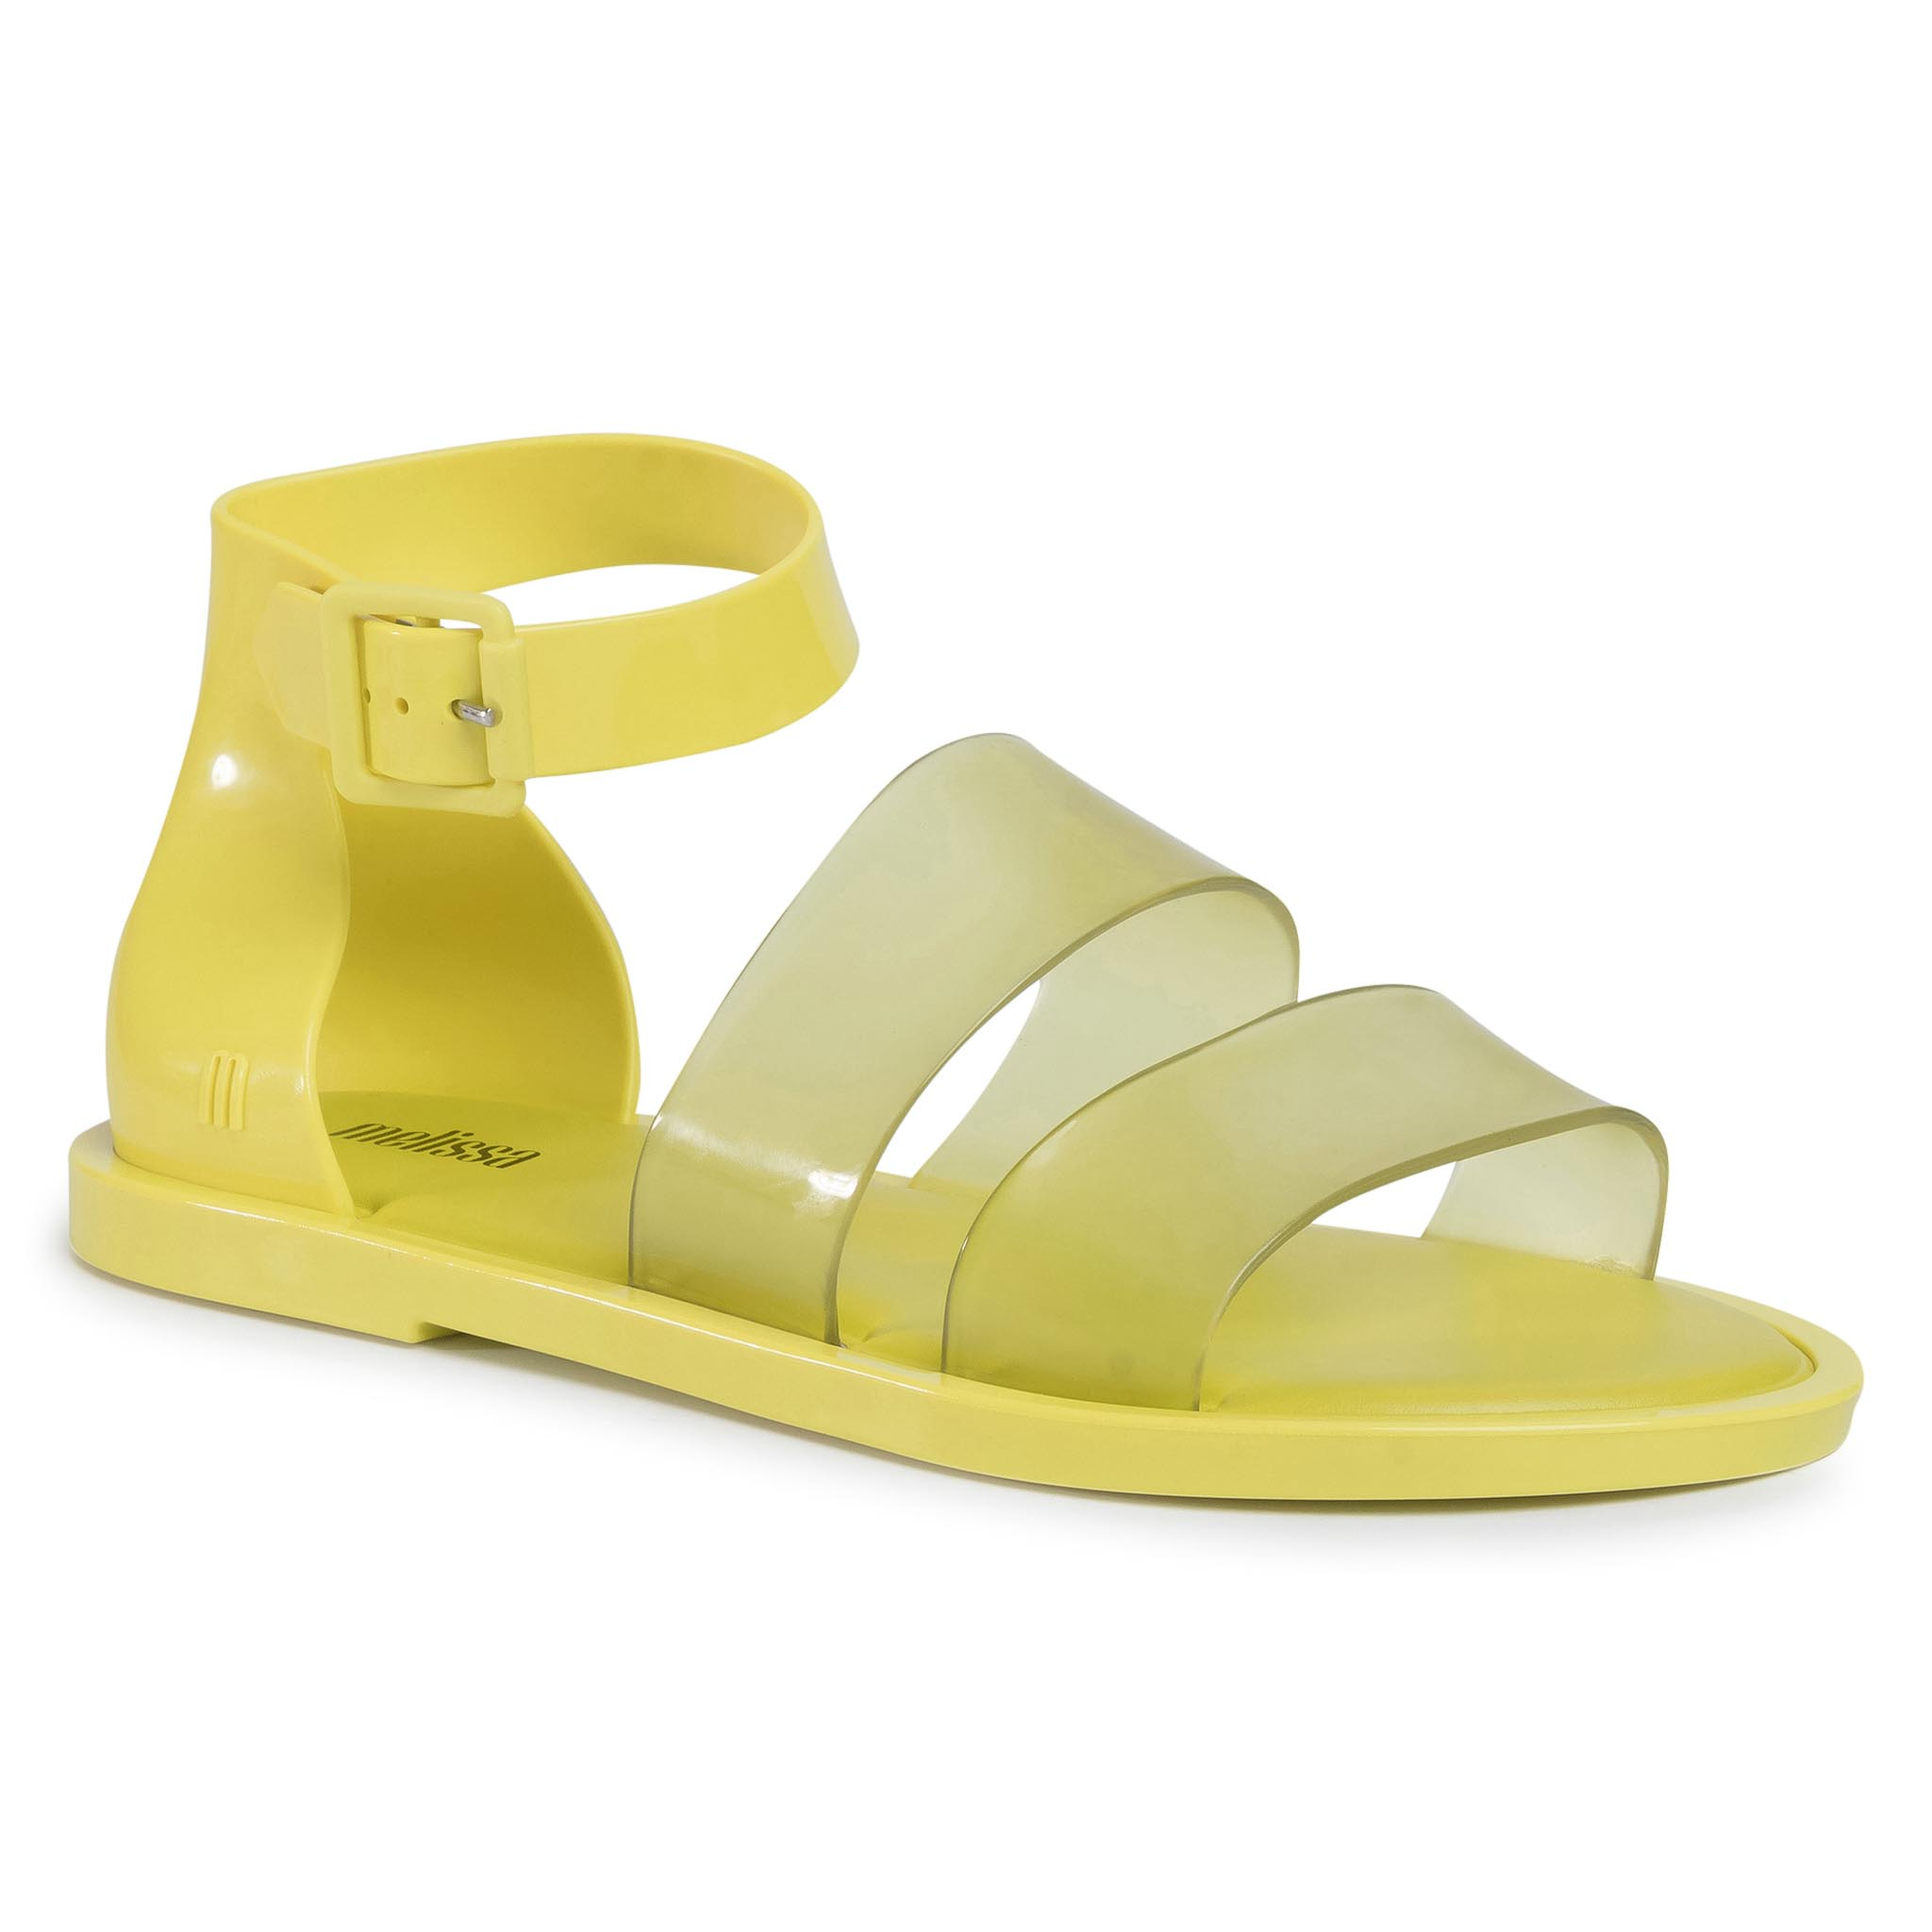 Sandale Melissa - Model Sandal Ad 32797 Yellow 50866 imagine epantofi.ro 2021